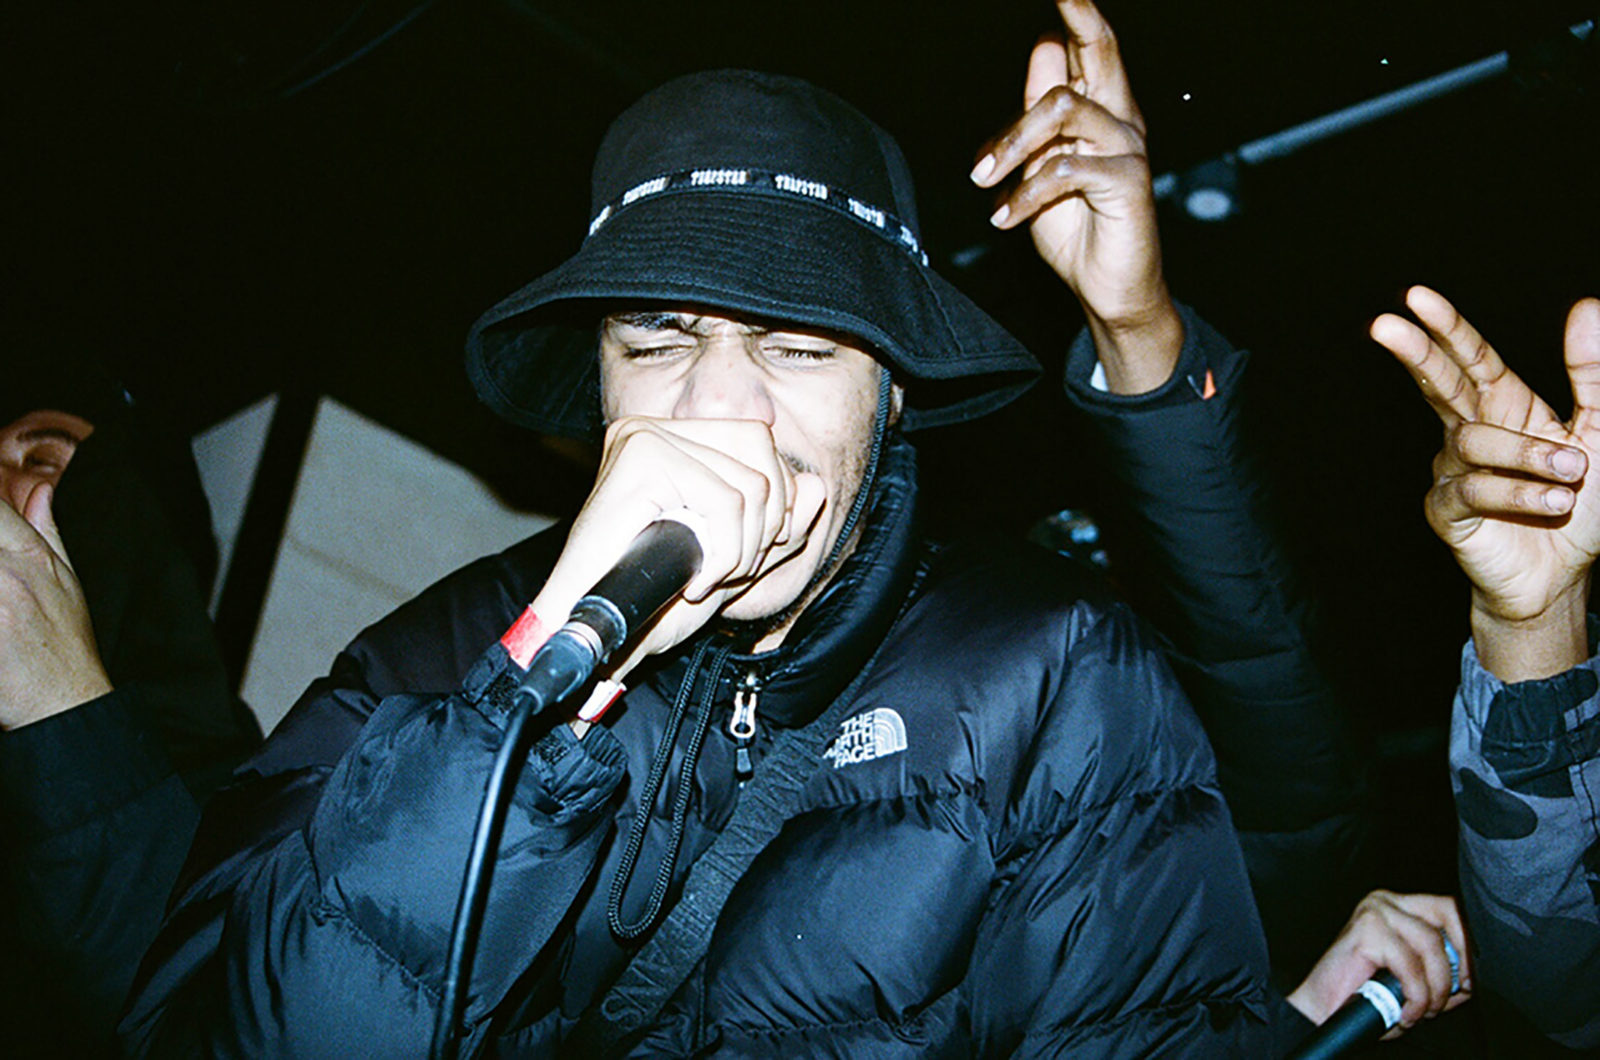 AJ Tracey, Ace Hotel, London